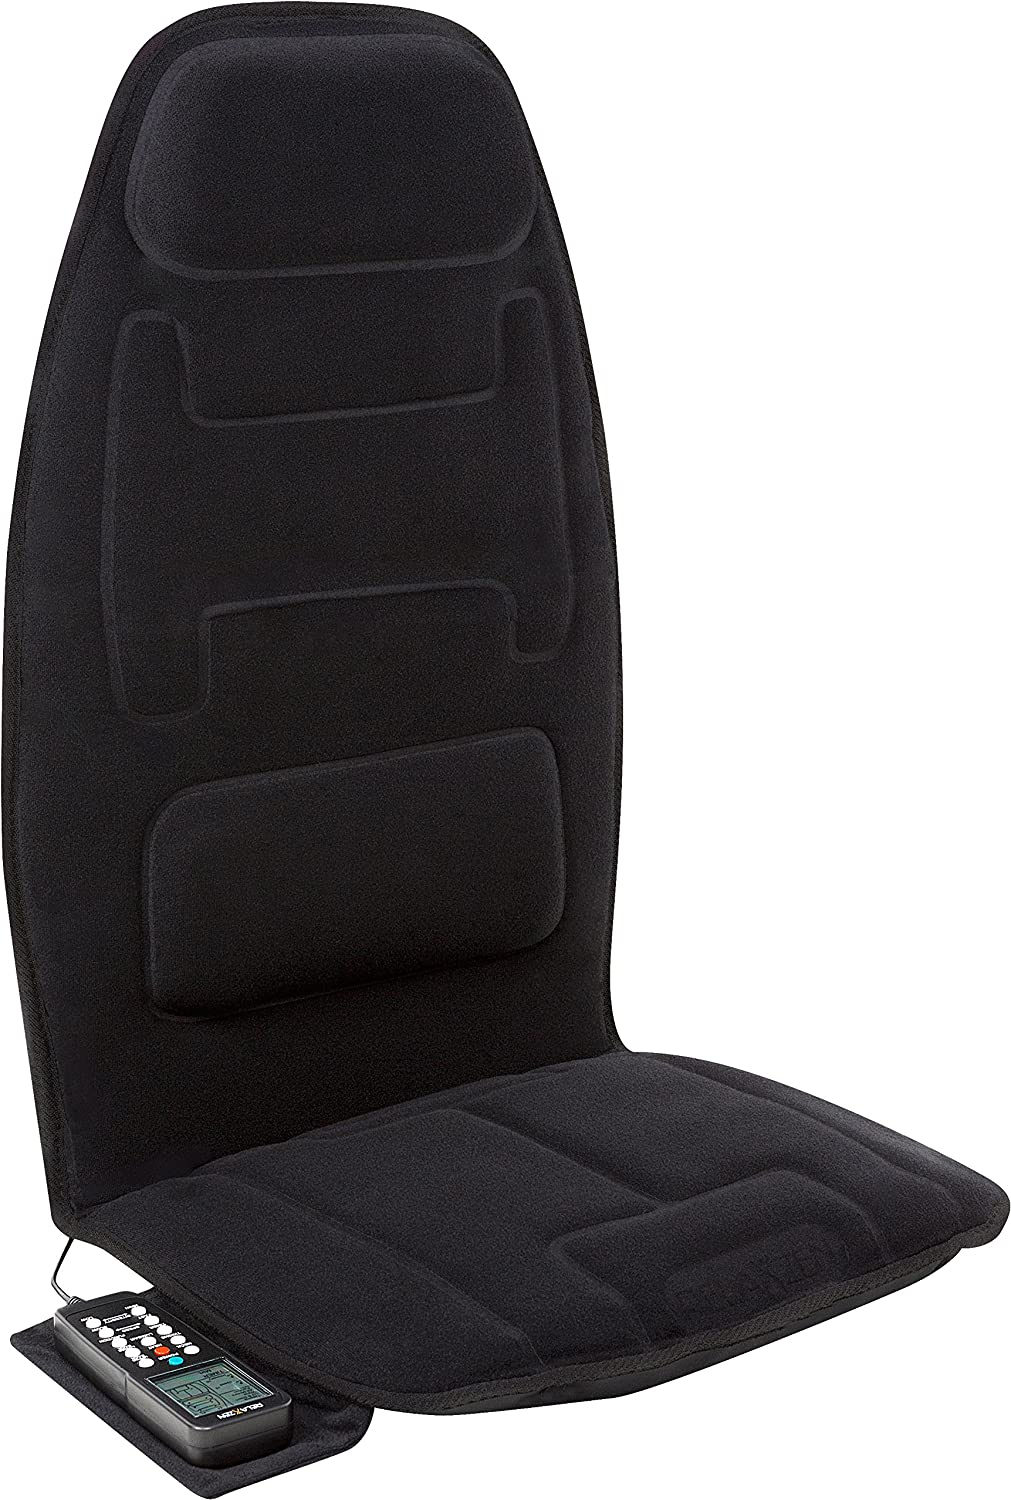 Best Heated Car Seat Covers Review Buying Guide In 2020 The Drive